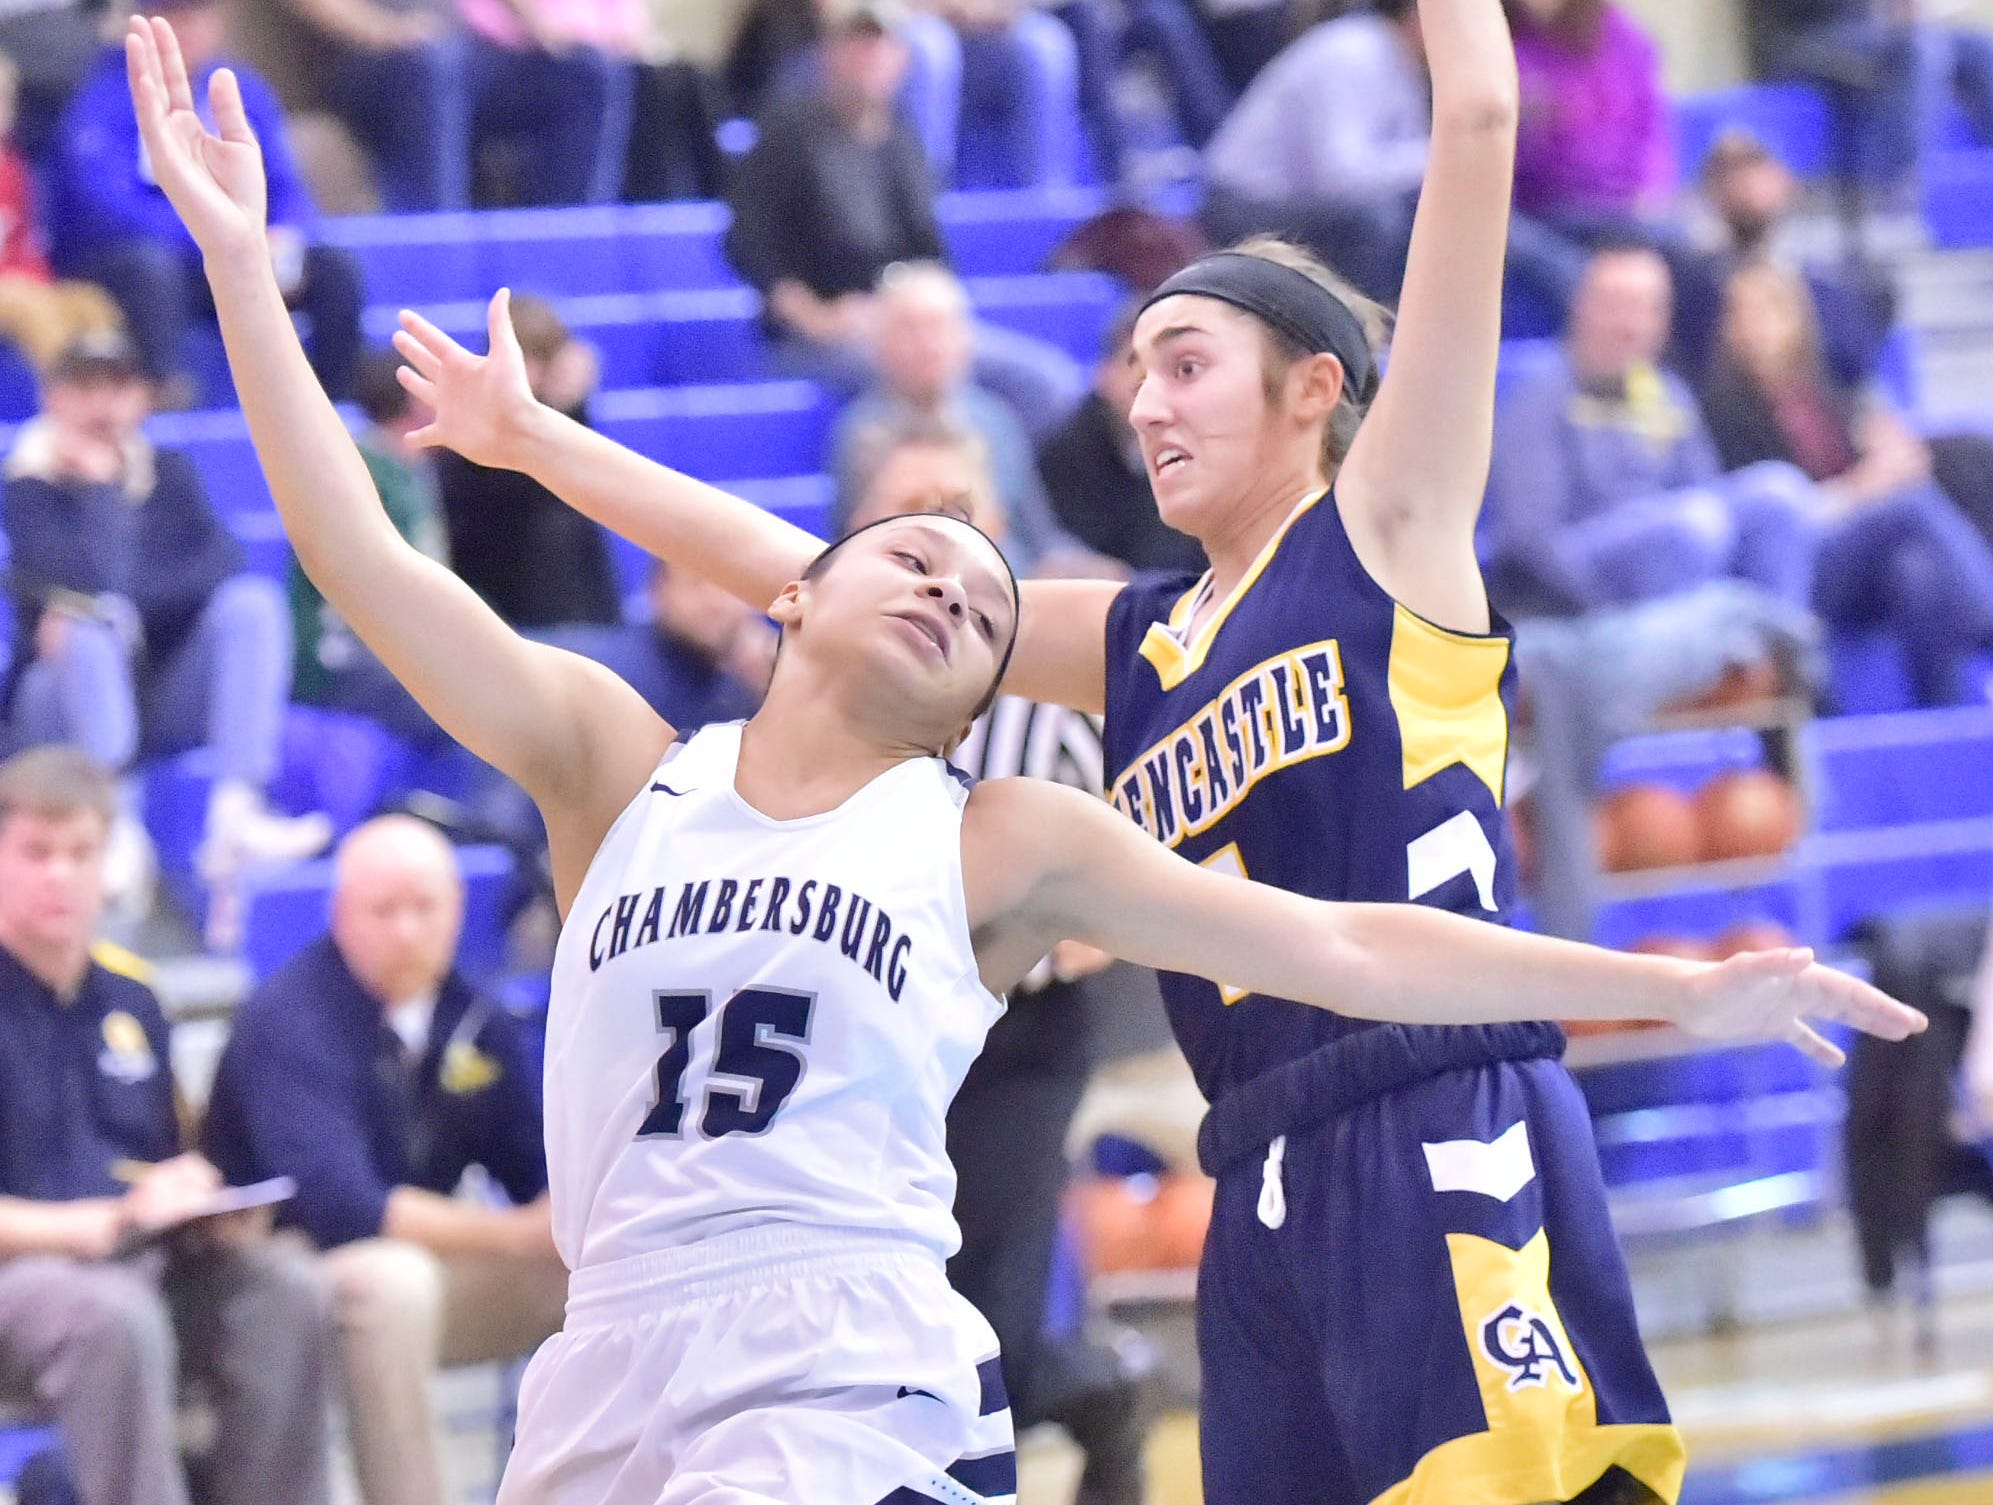 Chambersburg's Bre'ya Clooper (15) gets position with Greencastle's McKenna Rakaczewski Chambersburg played Greencastle during the finals at Franklin County Tip-Off Tournament, Saturday, Dec. 8, 2018.